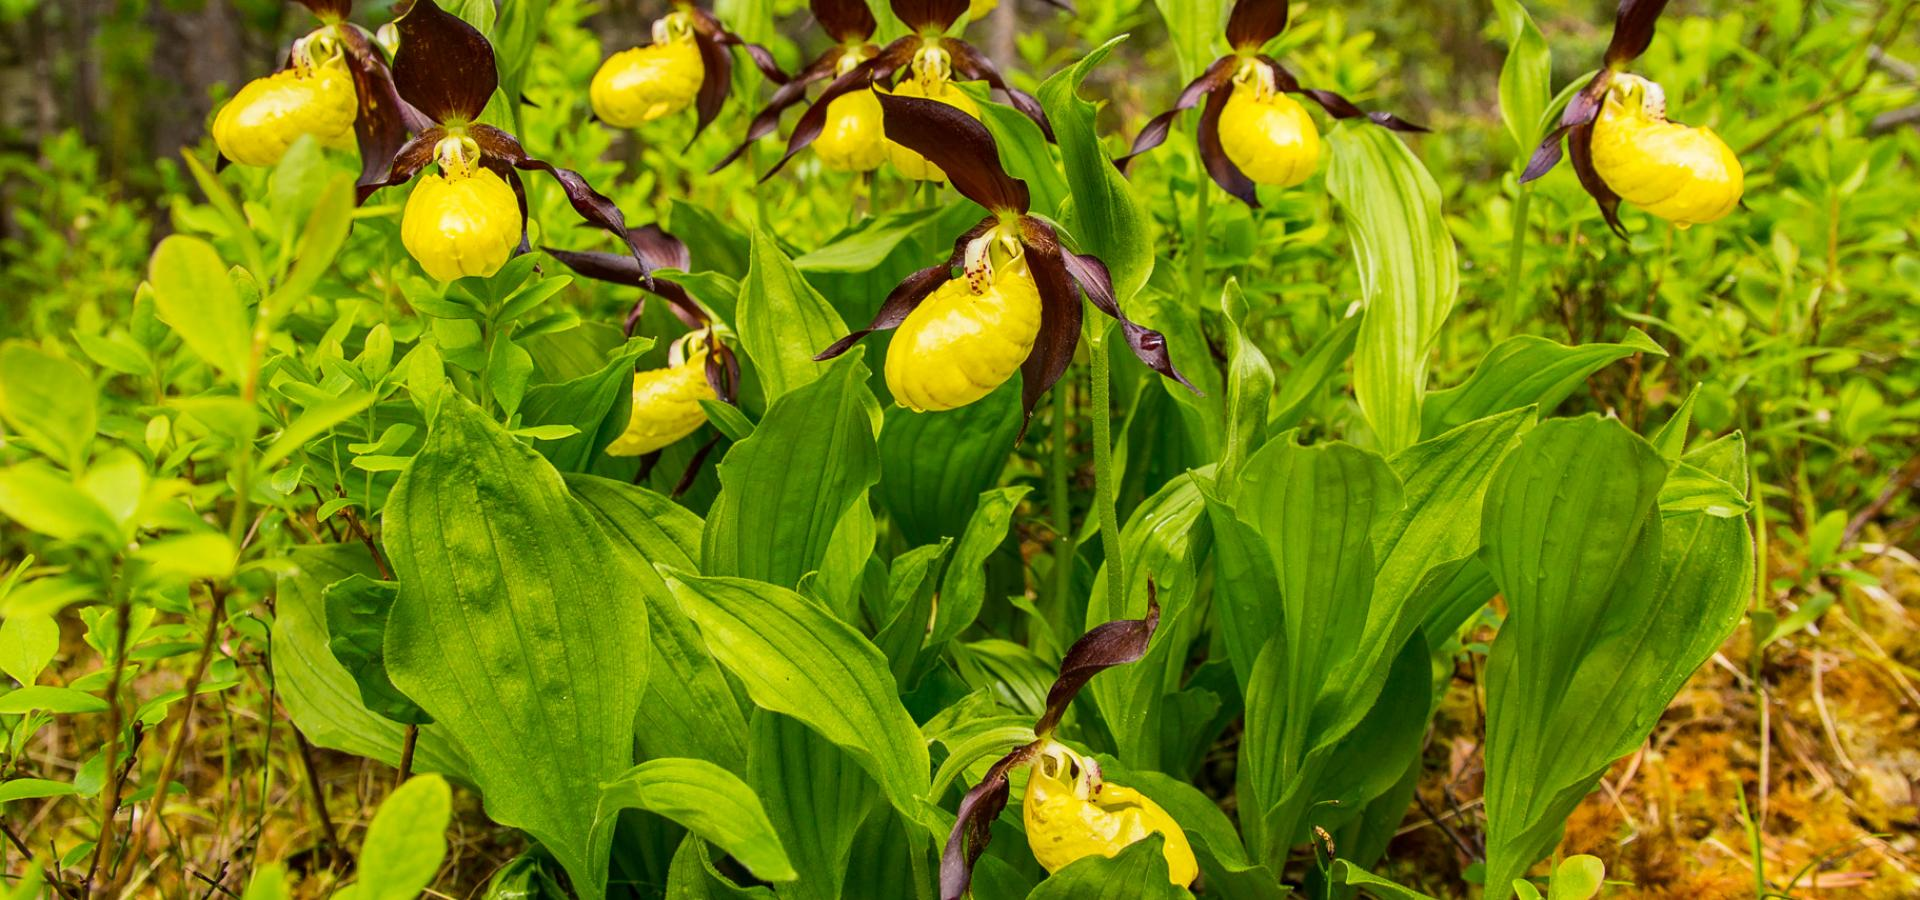 Lady's slipper in full bloom